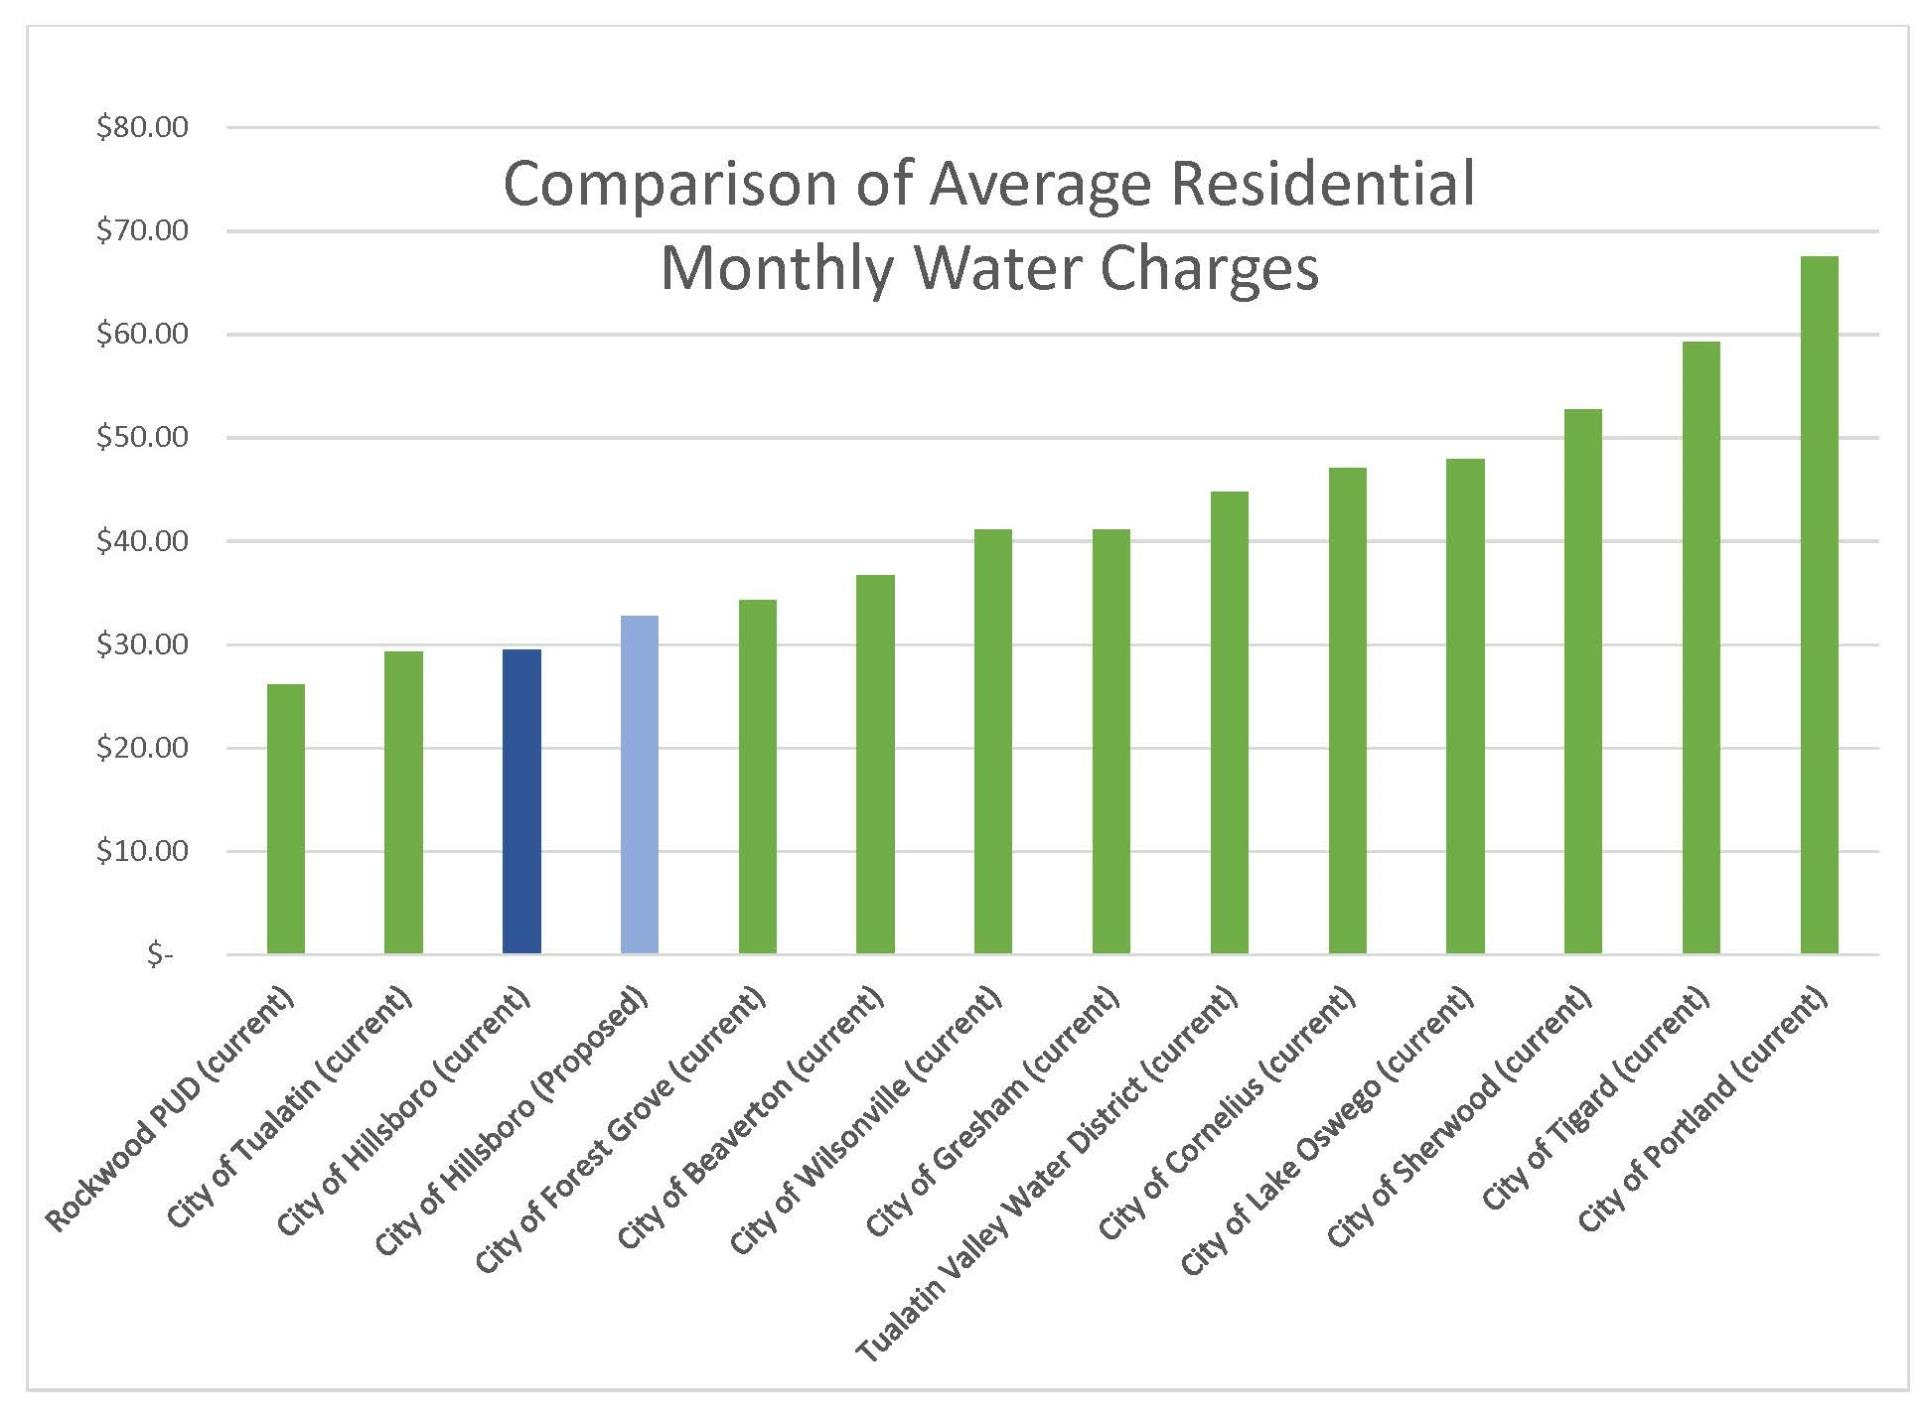 Comparison of Average Residential Monthly Water Charges - Bar Graph